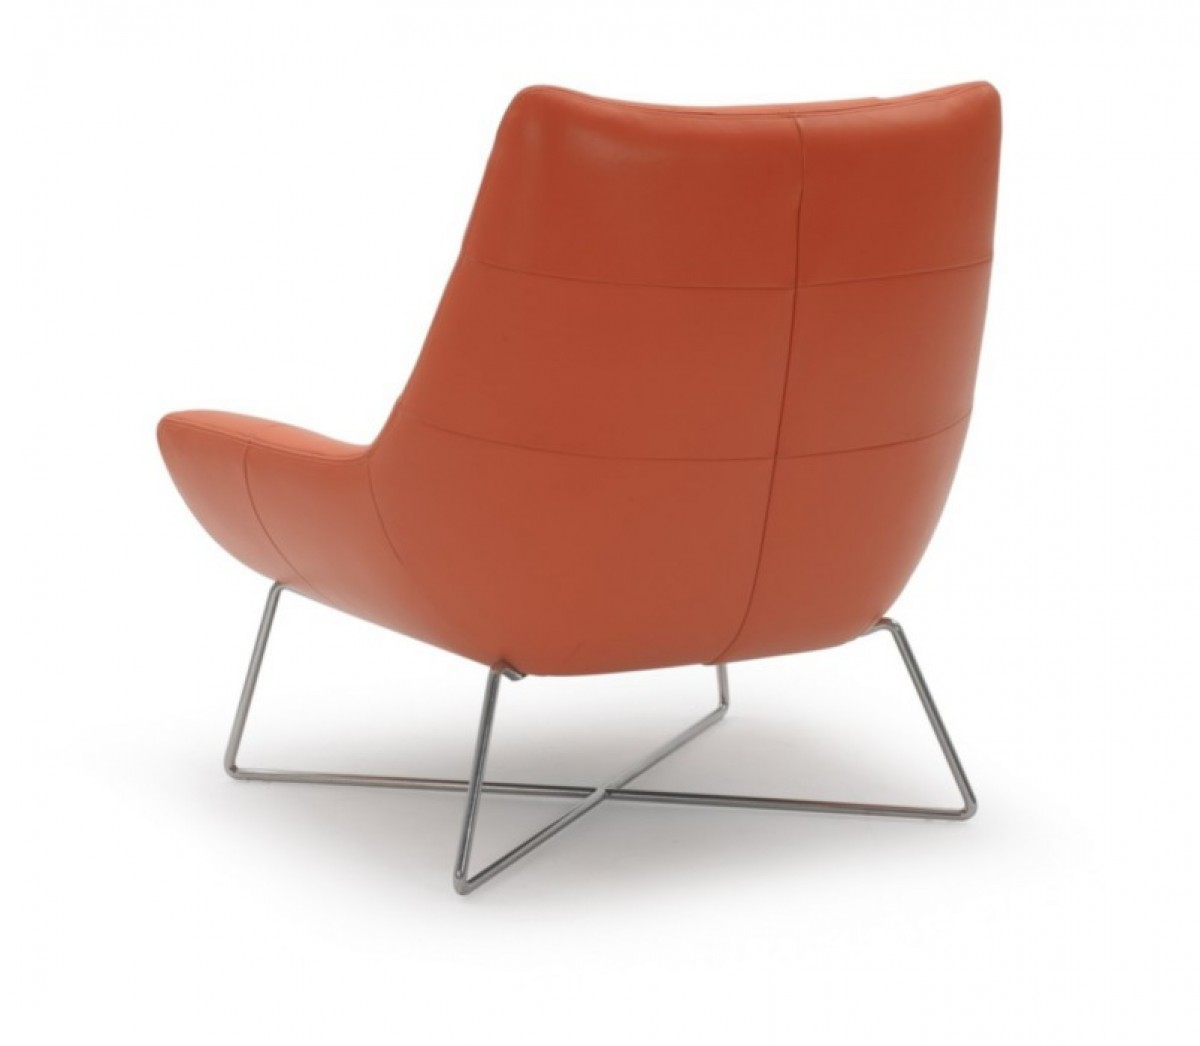 Orange Leather Chair Modern Orange Leather And Stainless Steel Lounge Chair